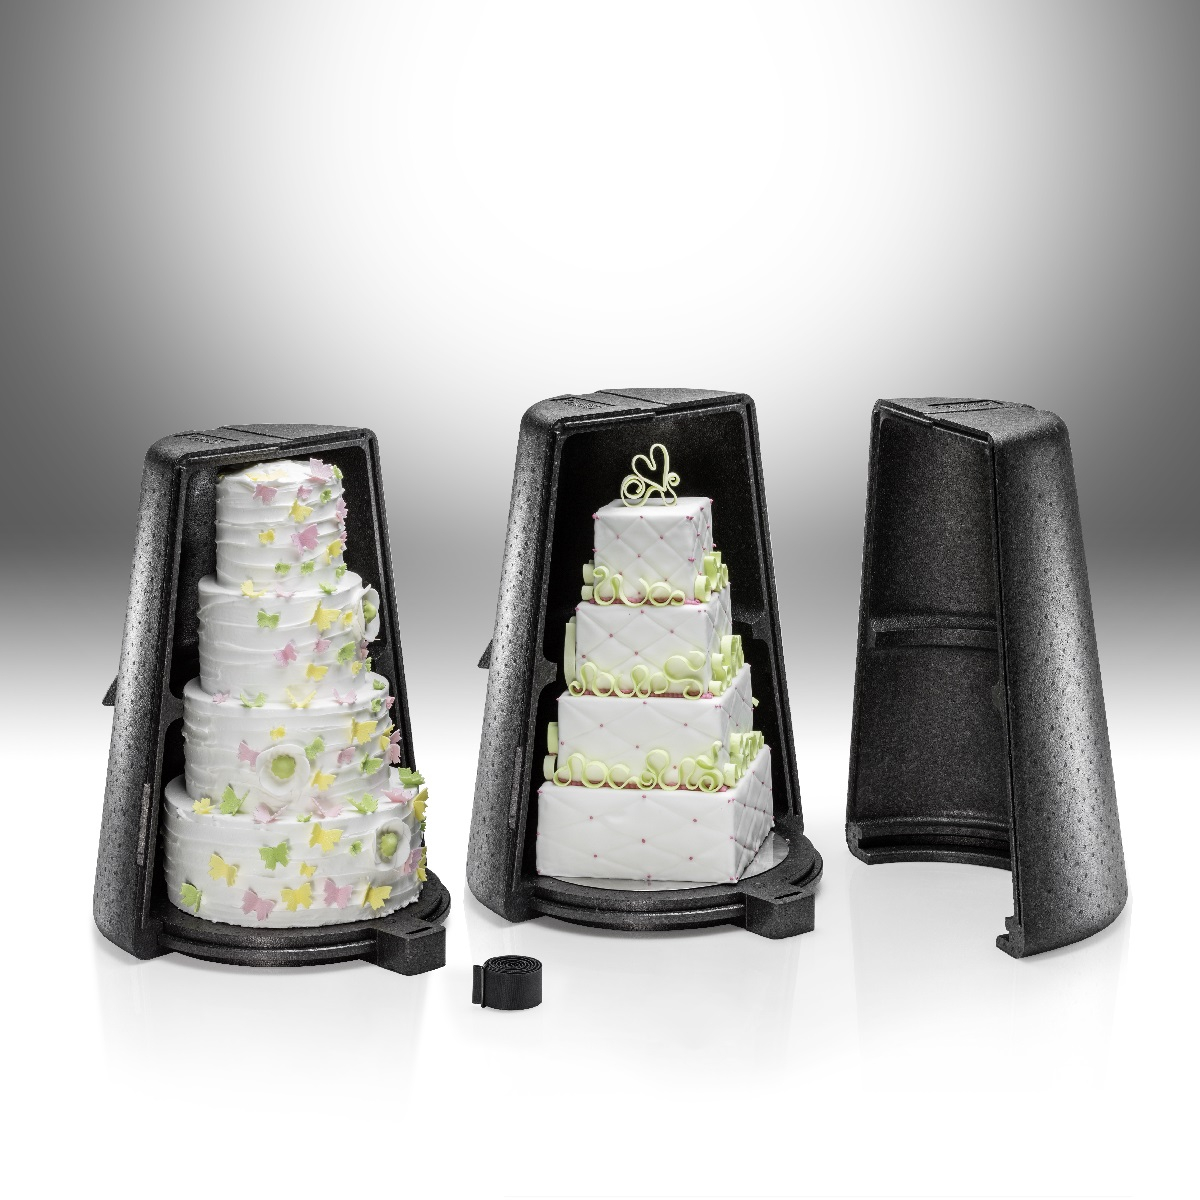 Insulated Containers for Cakes